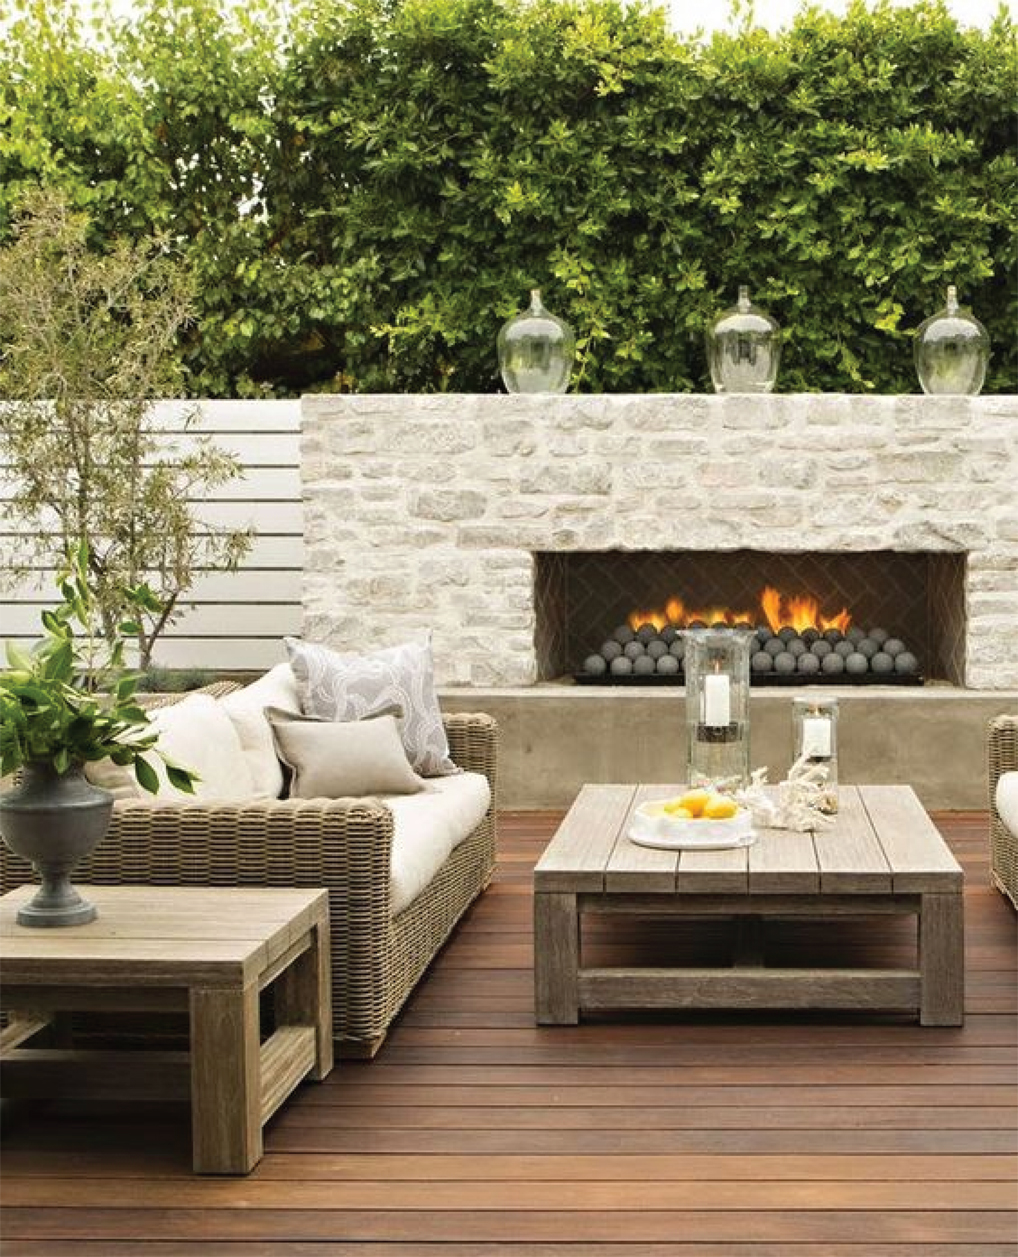 Contemporary Linear Outdoor Fireplace